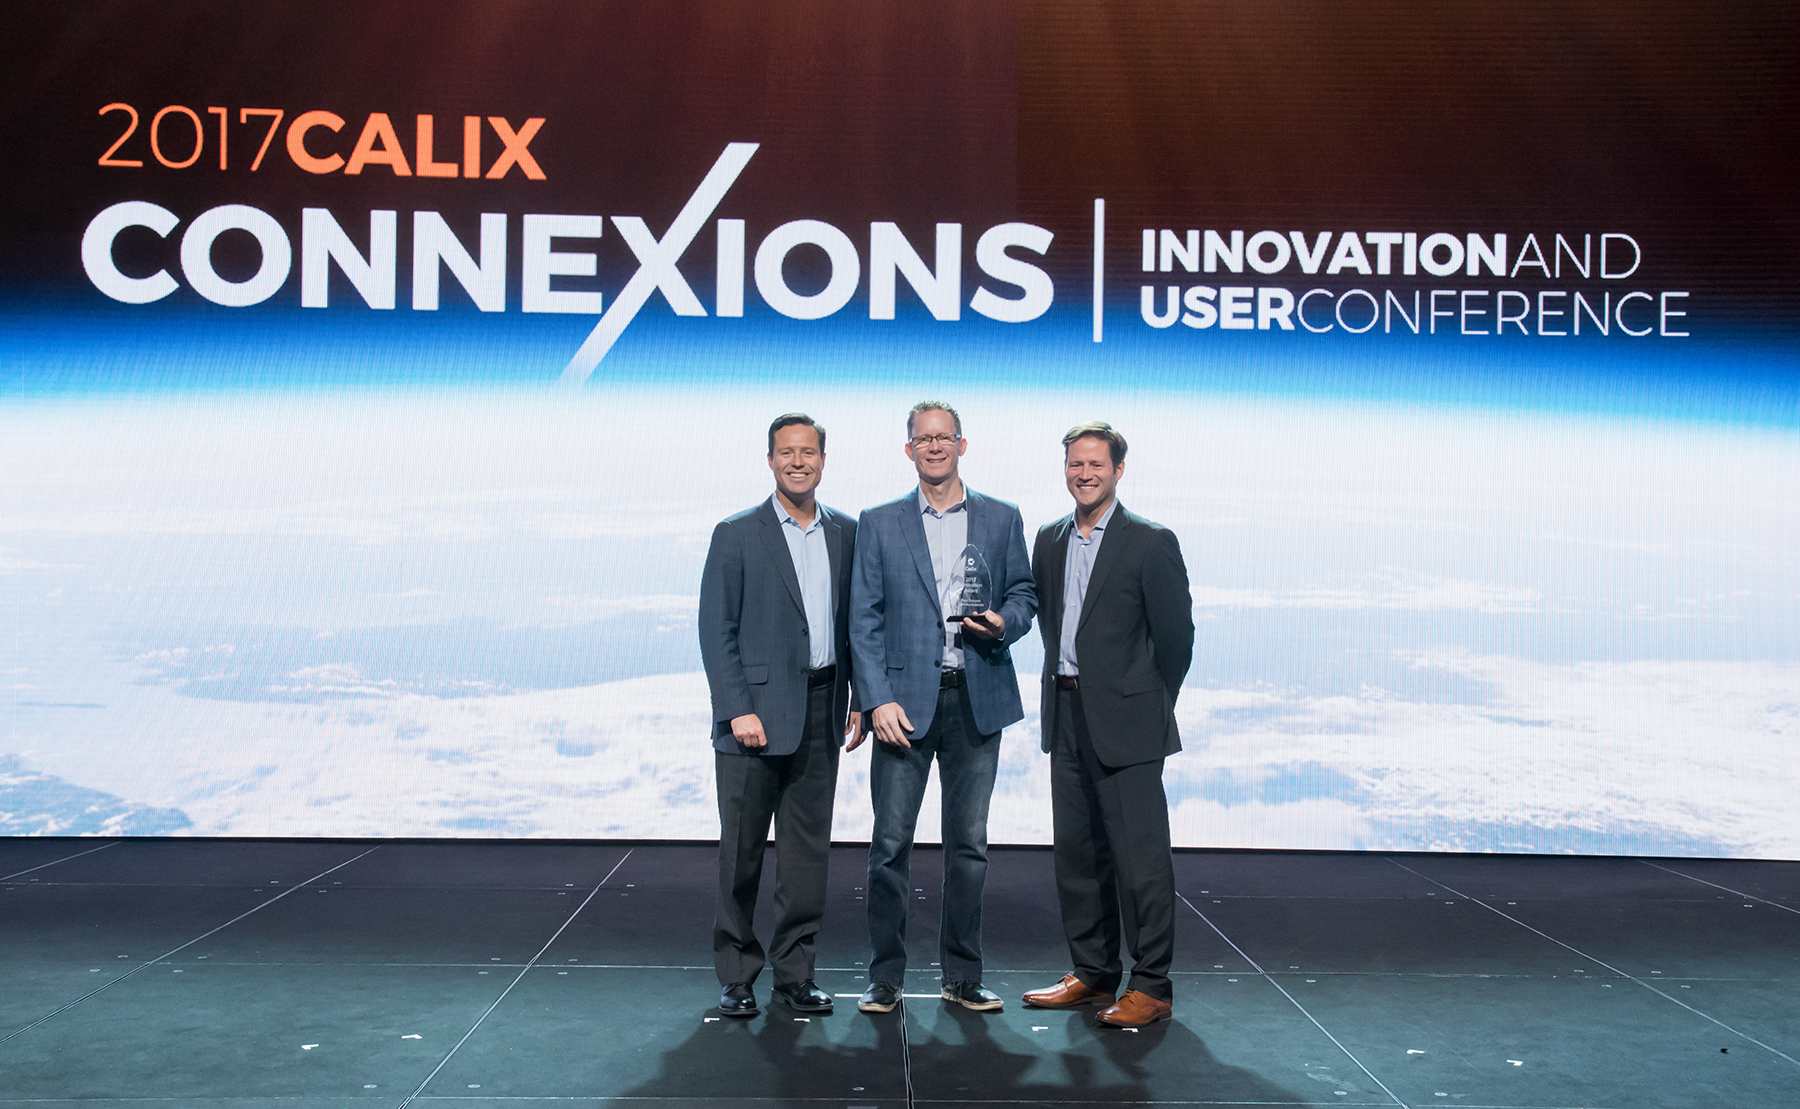 Pictured From L to R ? Matt Collins, Calix Chief Marketing Officer, Gary Johnson, Paul Bunyan Communications CEO/General Manager, Michael Weening, Calix Executive Vice President of Sales and Marketing